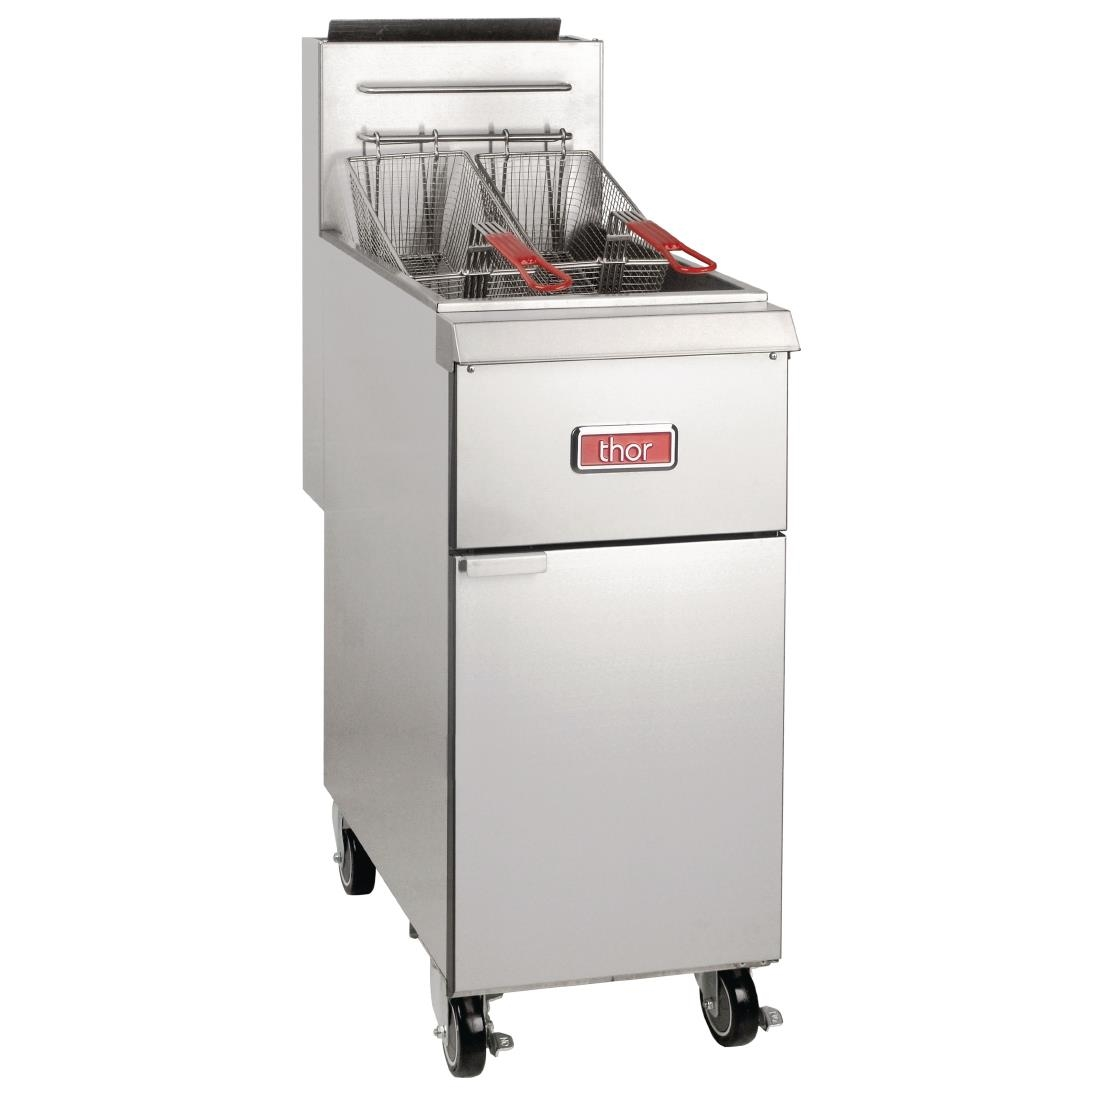 Thor Single Tank Twin Basket Free Standing Natural Gas Fryer 25Ltr